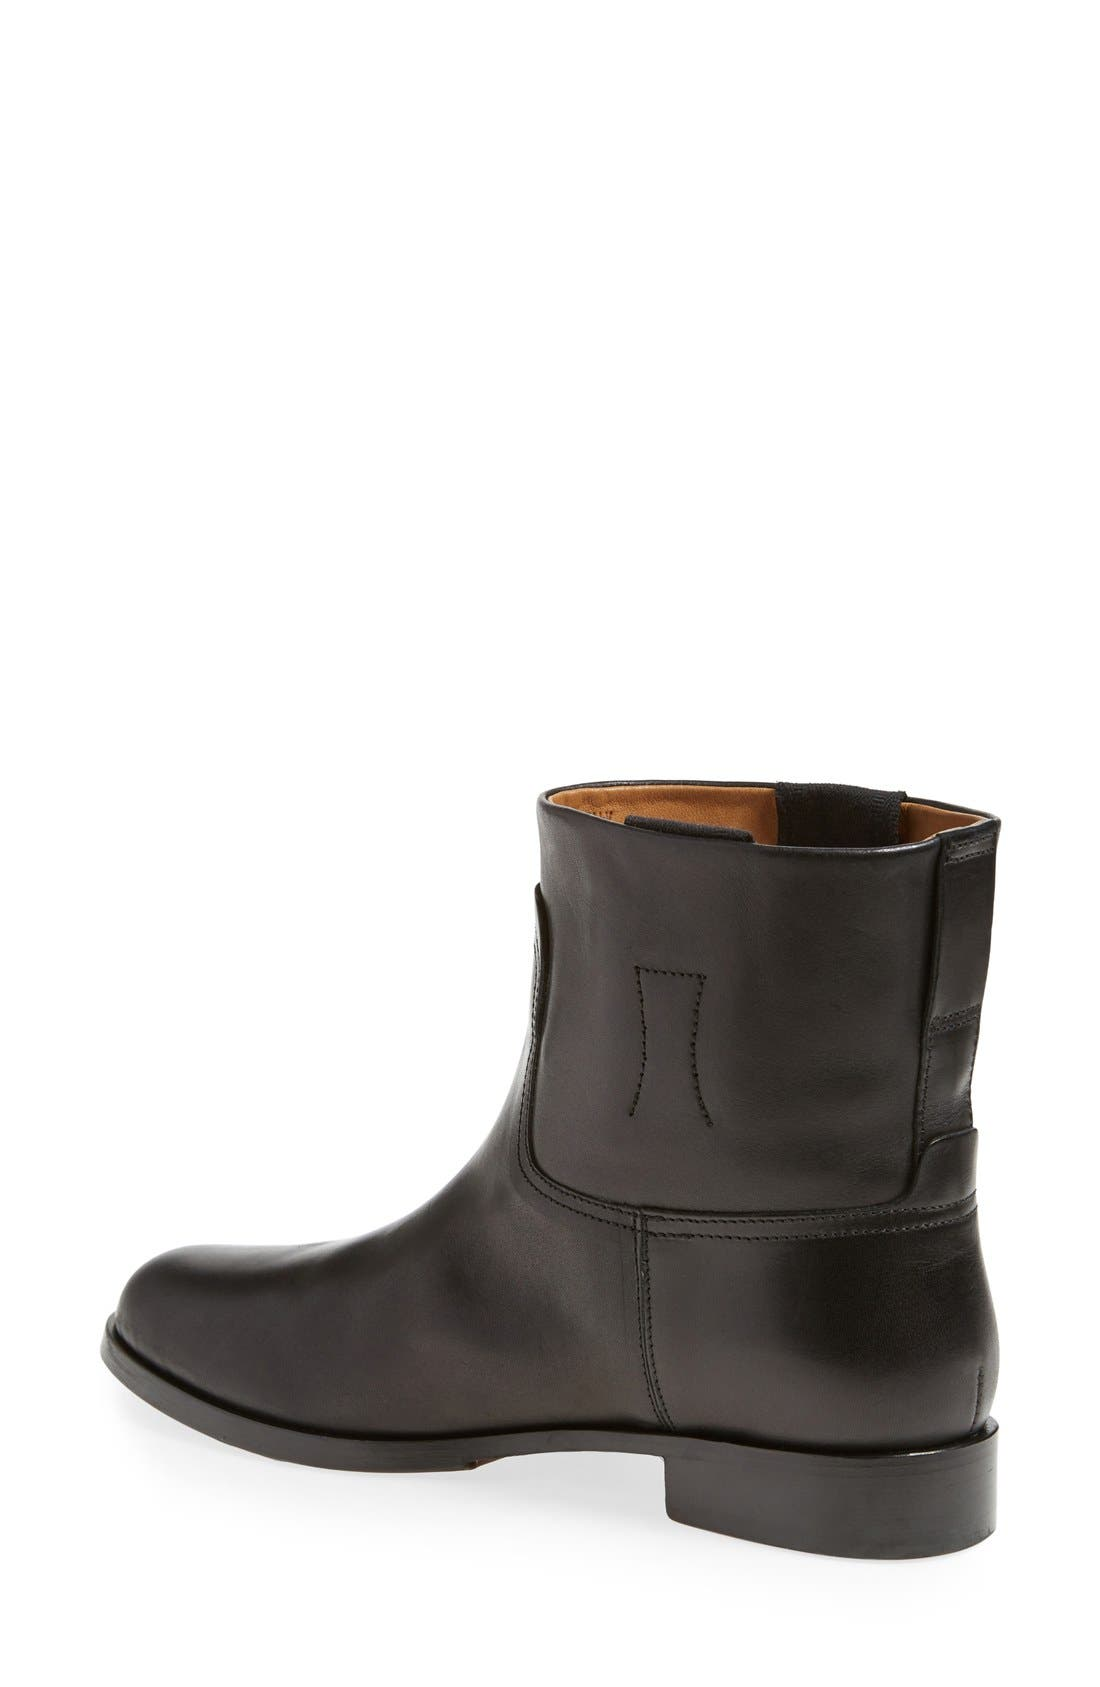 RAG & BONE,                             'Holly' Ankle Bootie,                             Alternate thumbnail 4, color,                             001